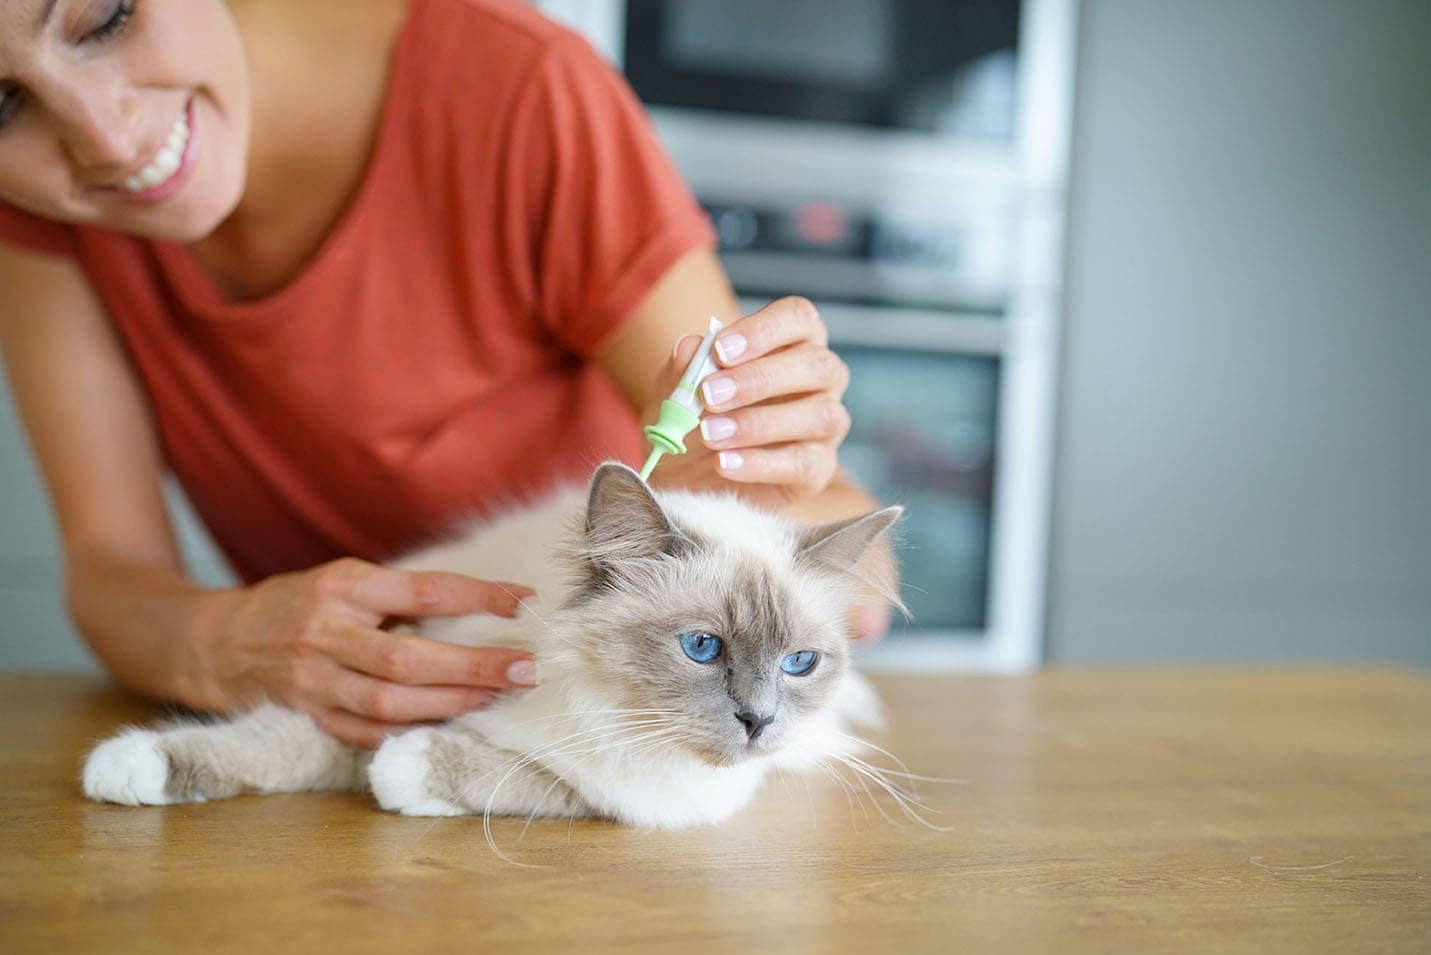 woman putting medication to cat